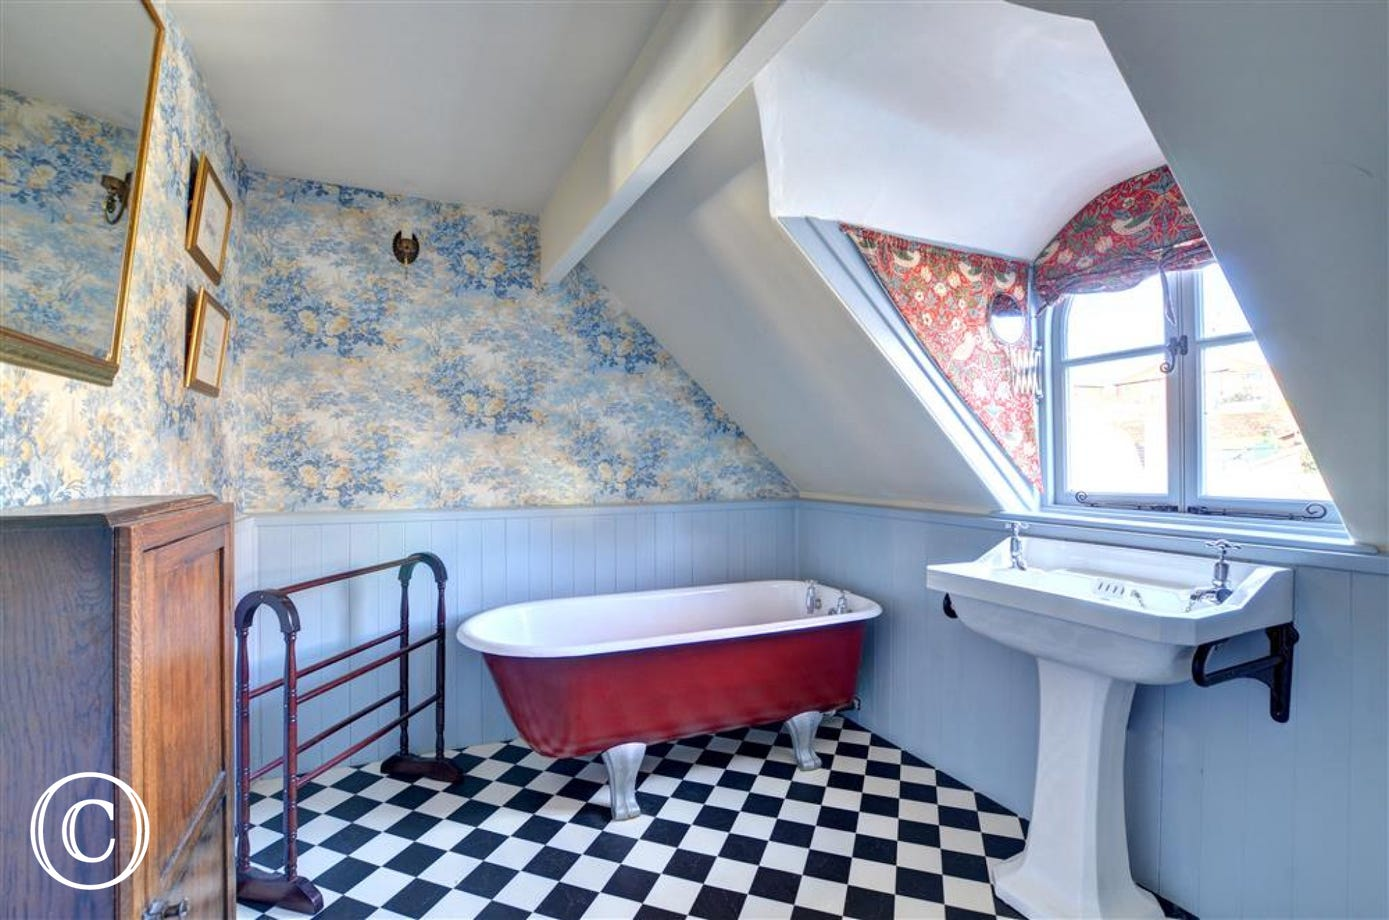 Characterful bathroom with roll-top bath.